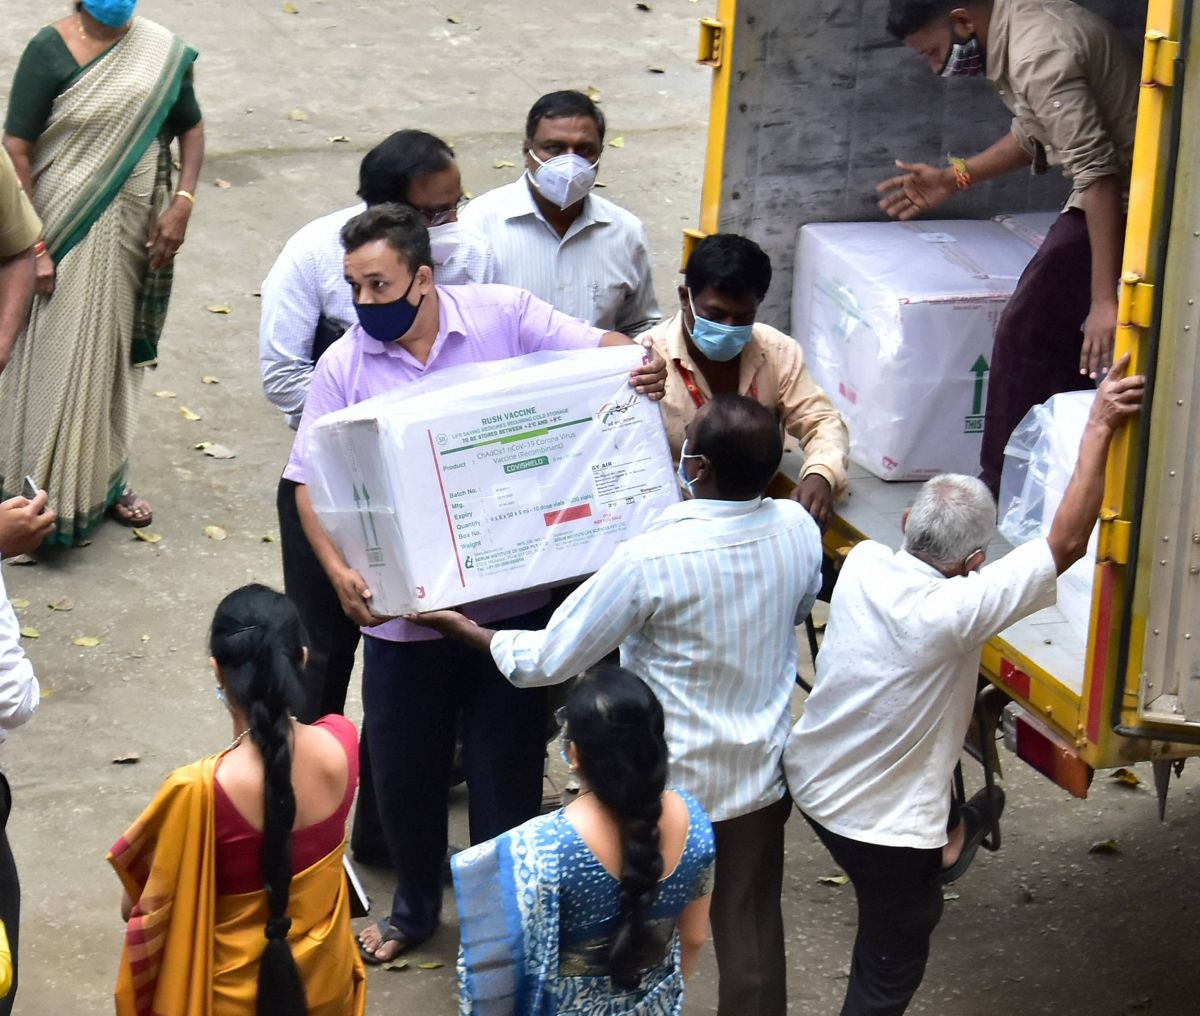 Indians may not get to choose which vaccine to get